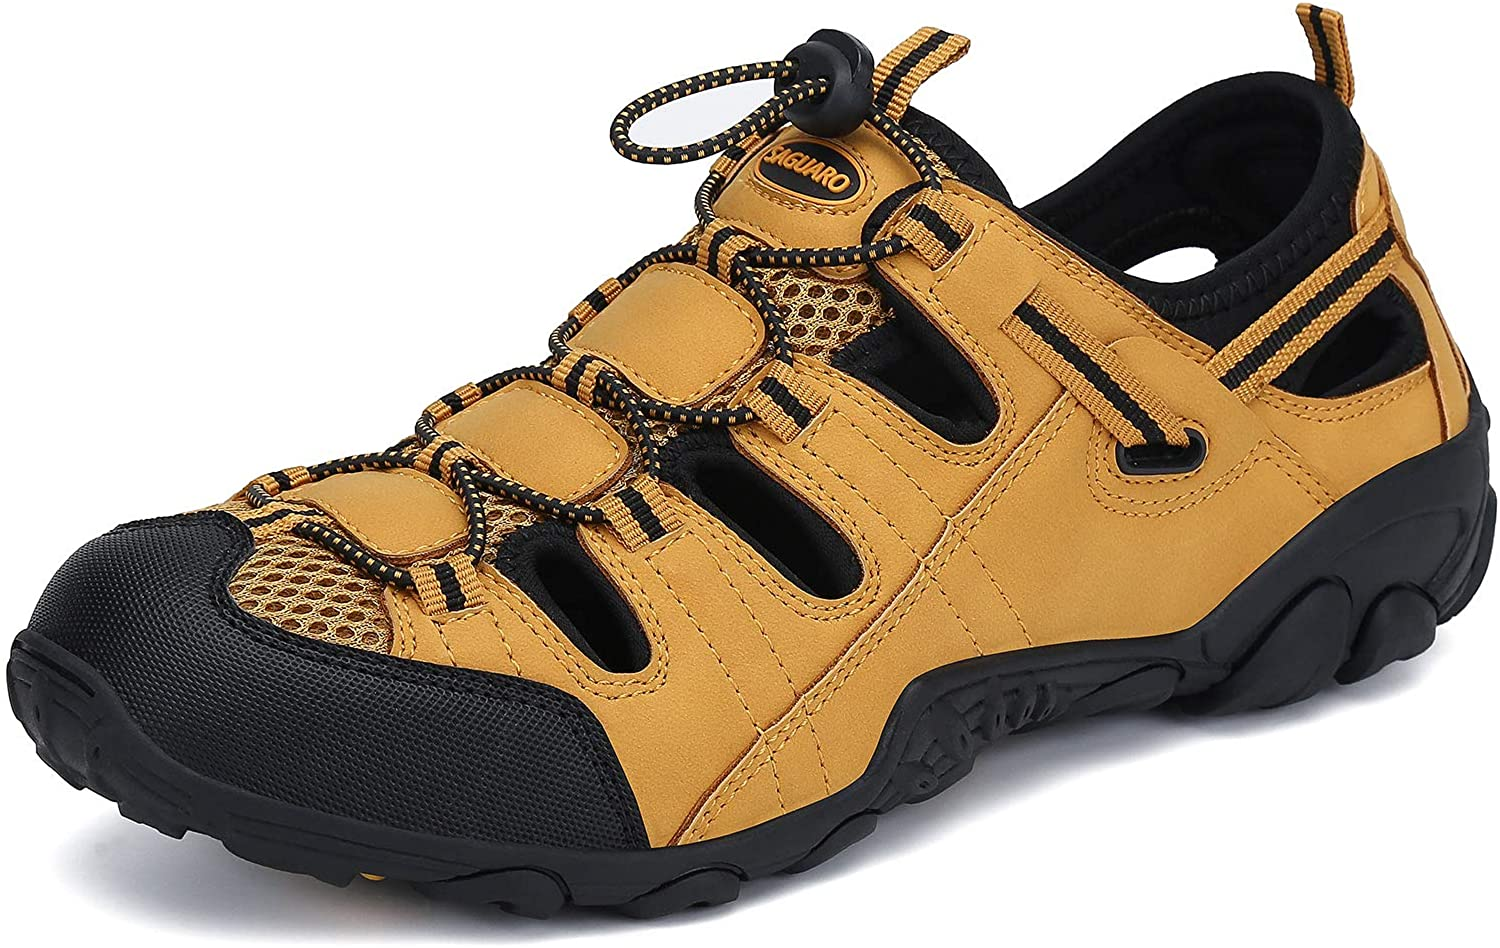 | Mens Womens Athletic Hiking Sandal Closed Toe Outdoor Walking Water Shoes | Sport Sandals & Slides